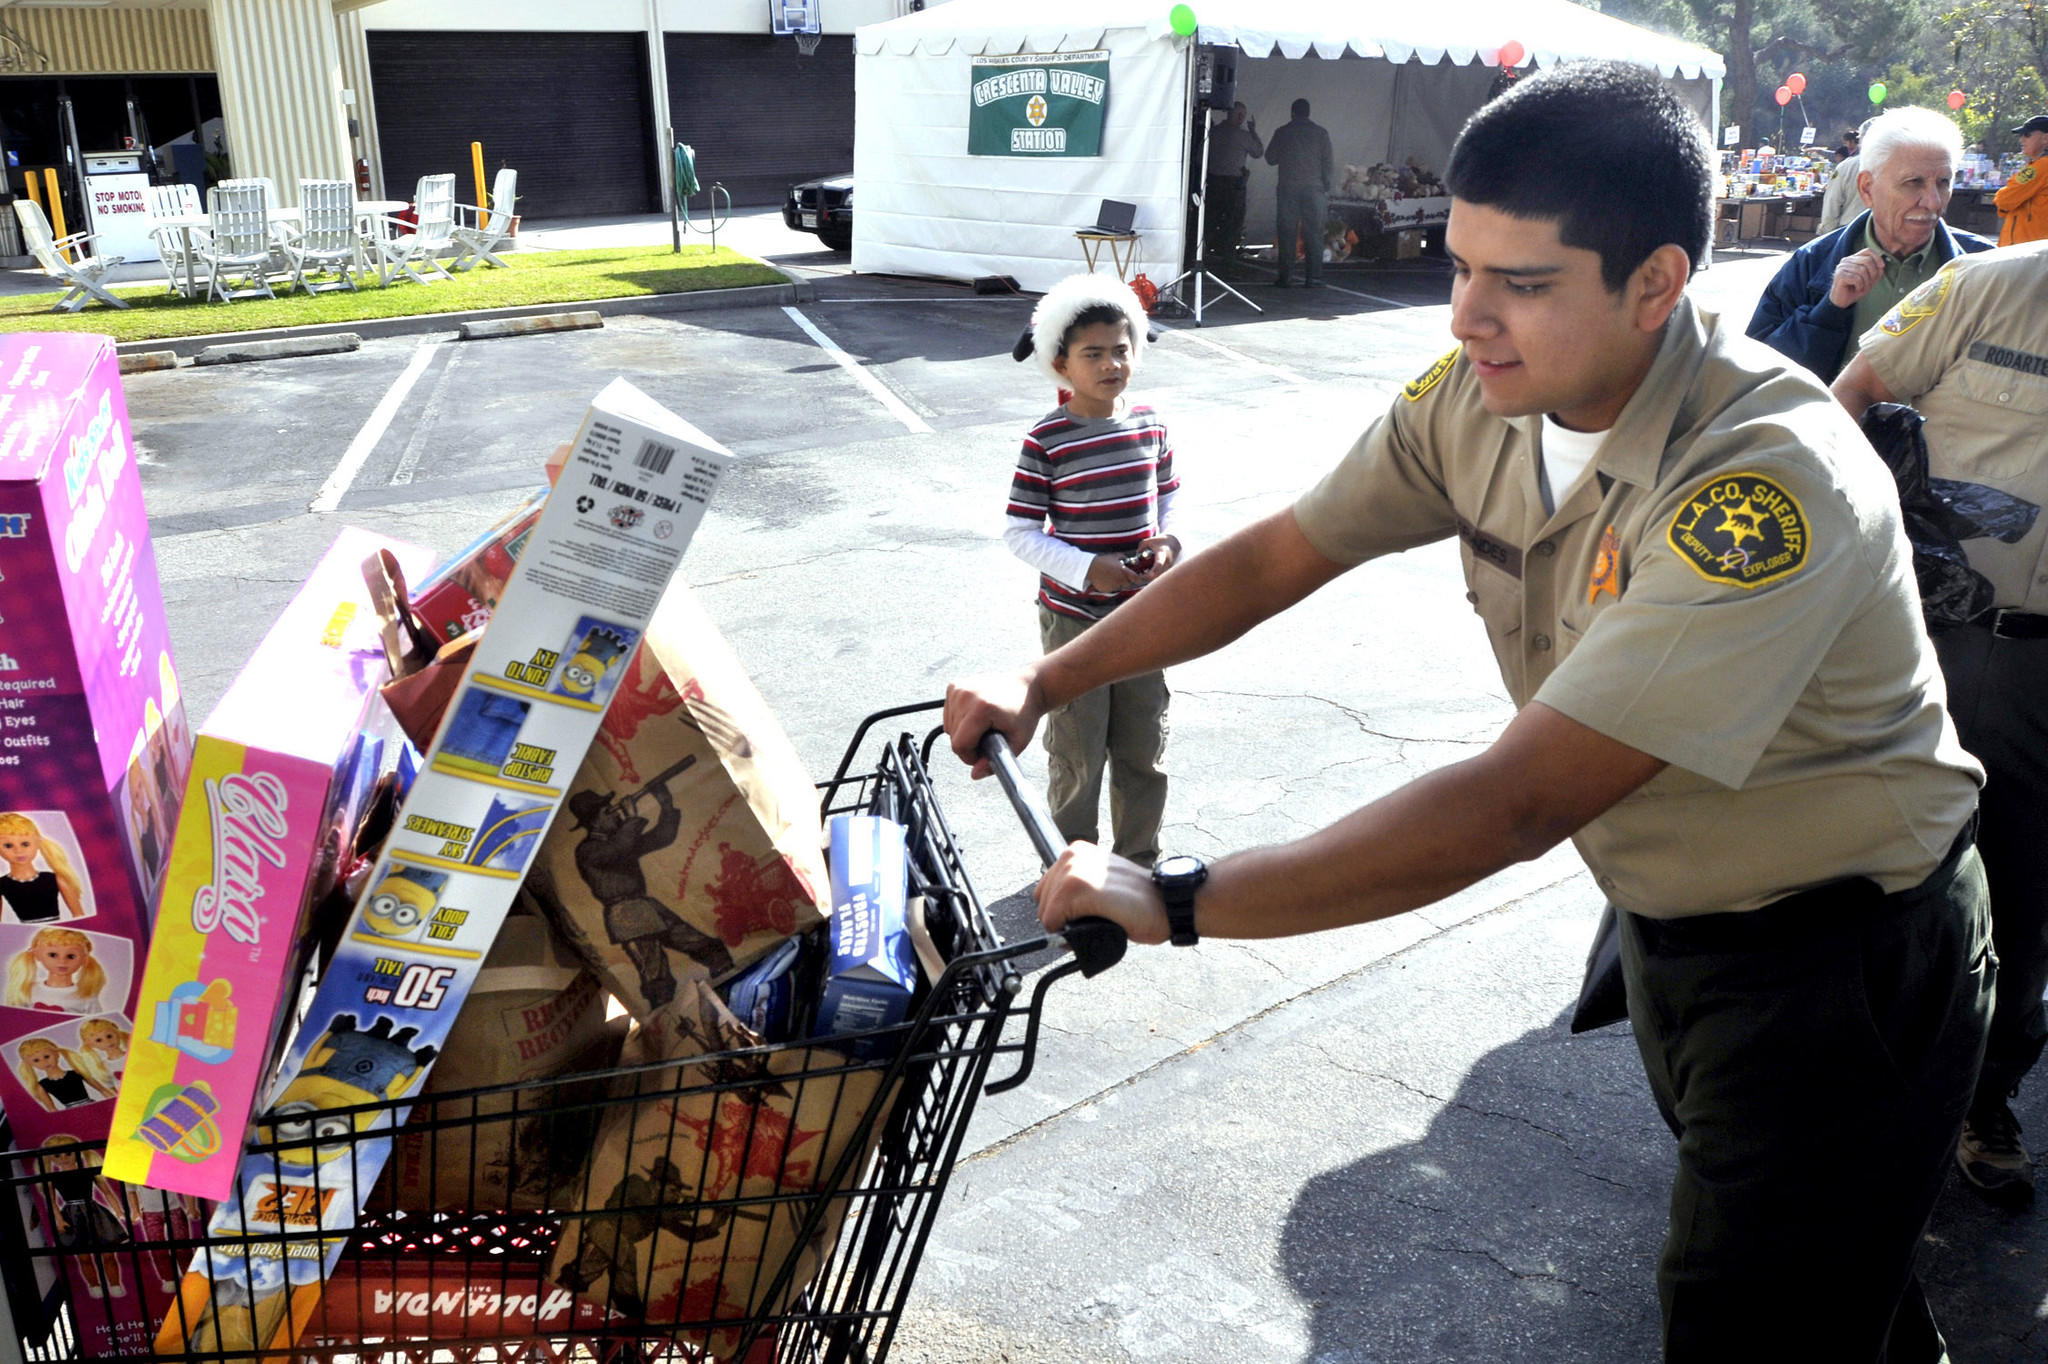 Explorer Richard Grandes pushes a cart filled with toys and food while helping a family of five at Crescenta Valley Sheriff's Station. Deputies, explorers and volunteers handed out Christmas gifts and bags of food to people in need on Saturday, Dec. 21, 2013.